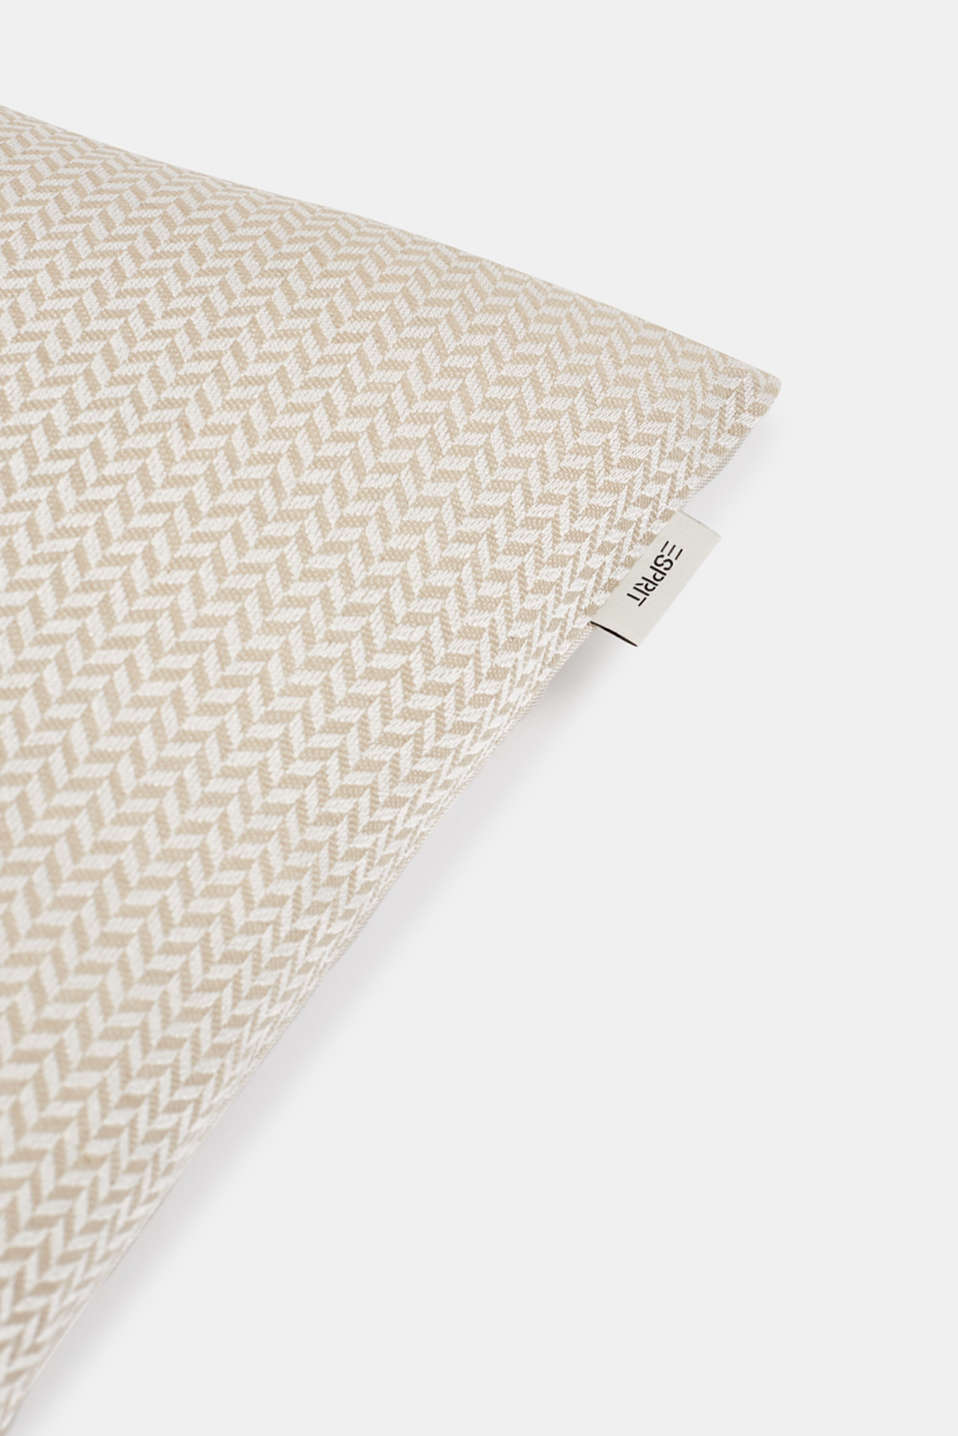 Cushion cover with a herringbone texture, NATURE, detail image number 1